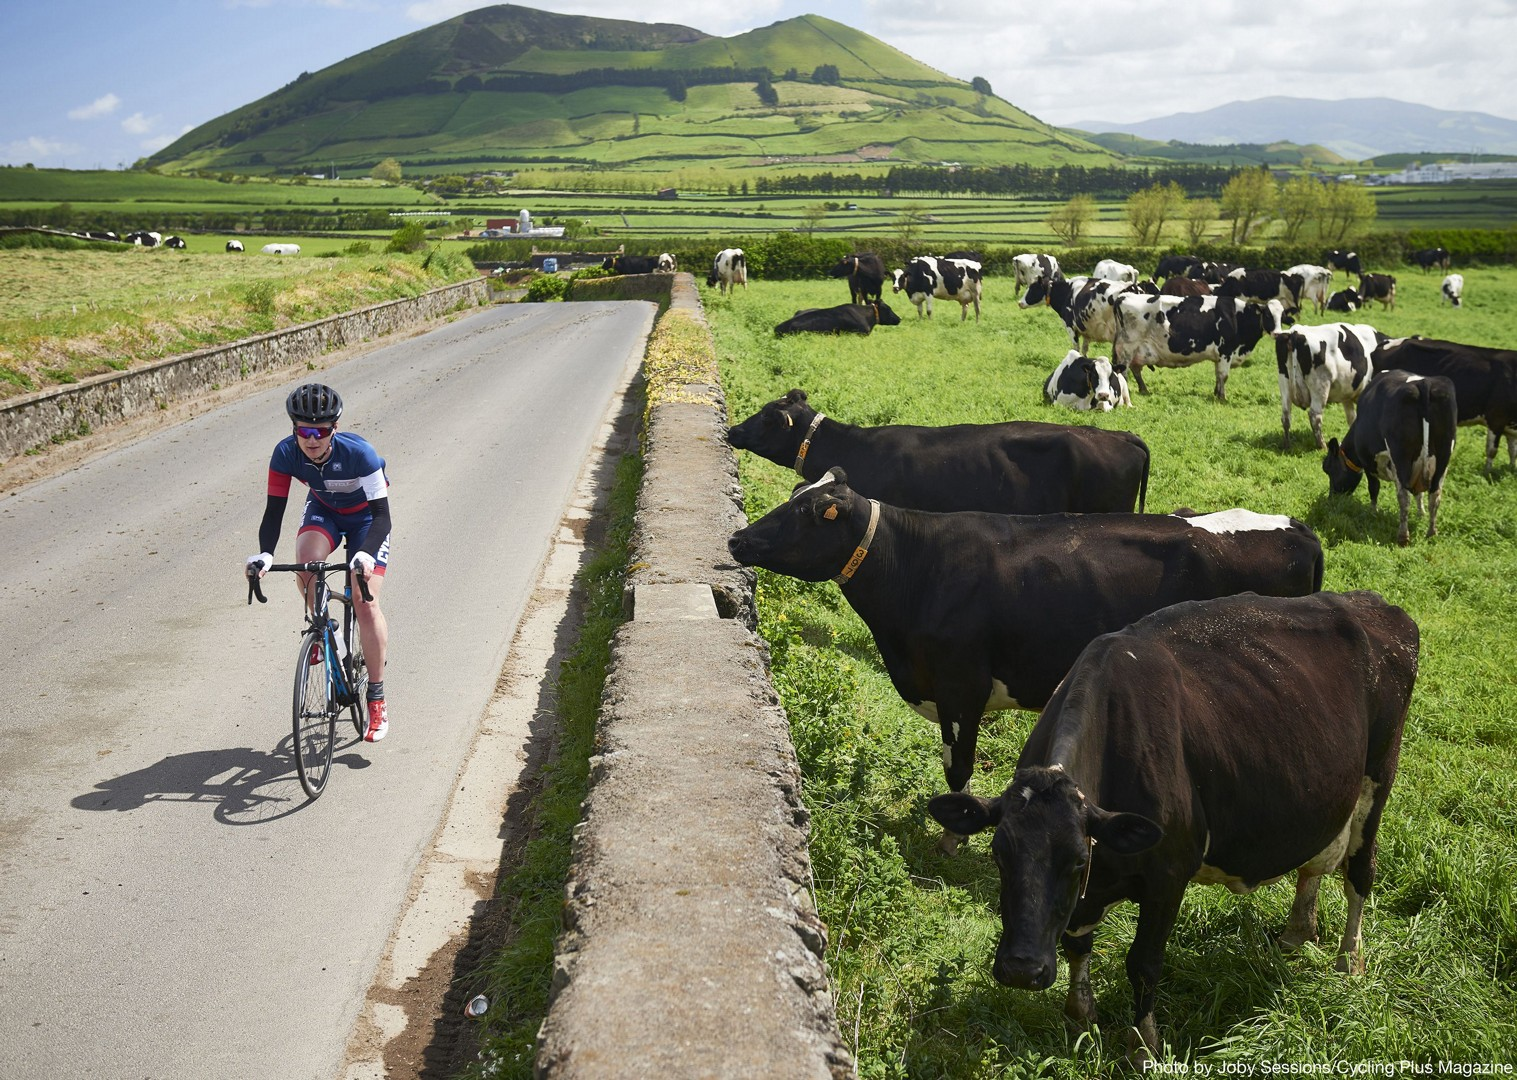 lost-world-of-sao-miguel-guided-road-cycling-holiday-the-azores.jpg - The Azores - Lost World of Sao Miguel - Guided Road Cycling Holiday - Road Cycling